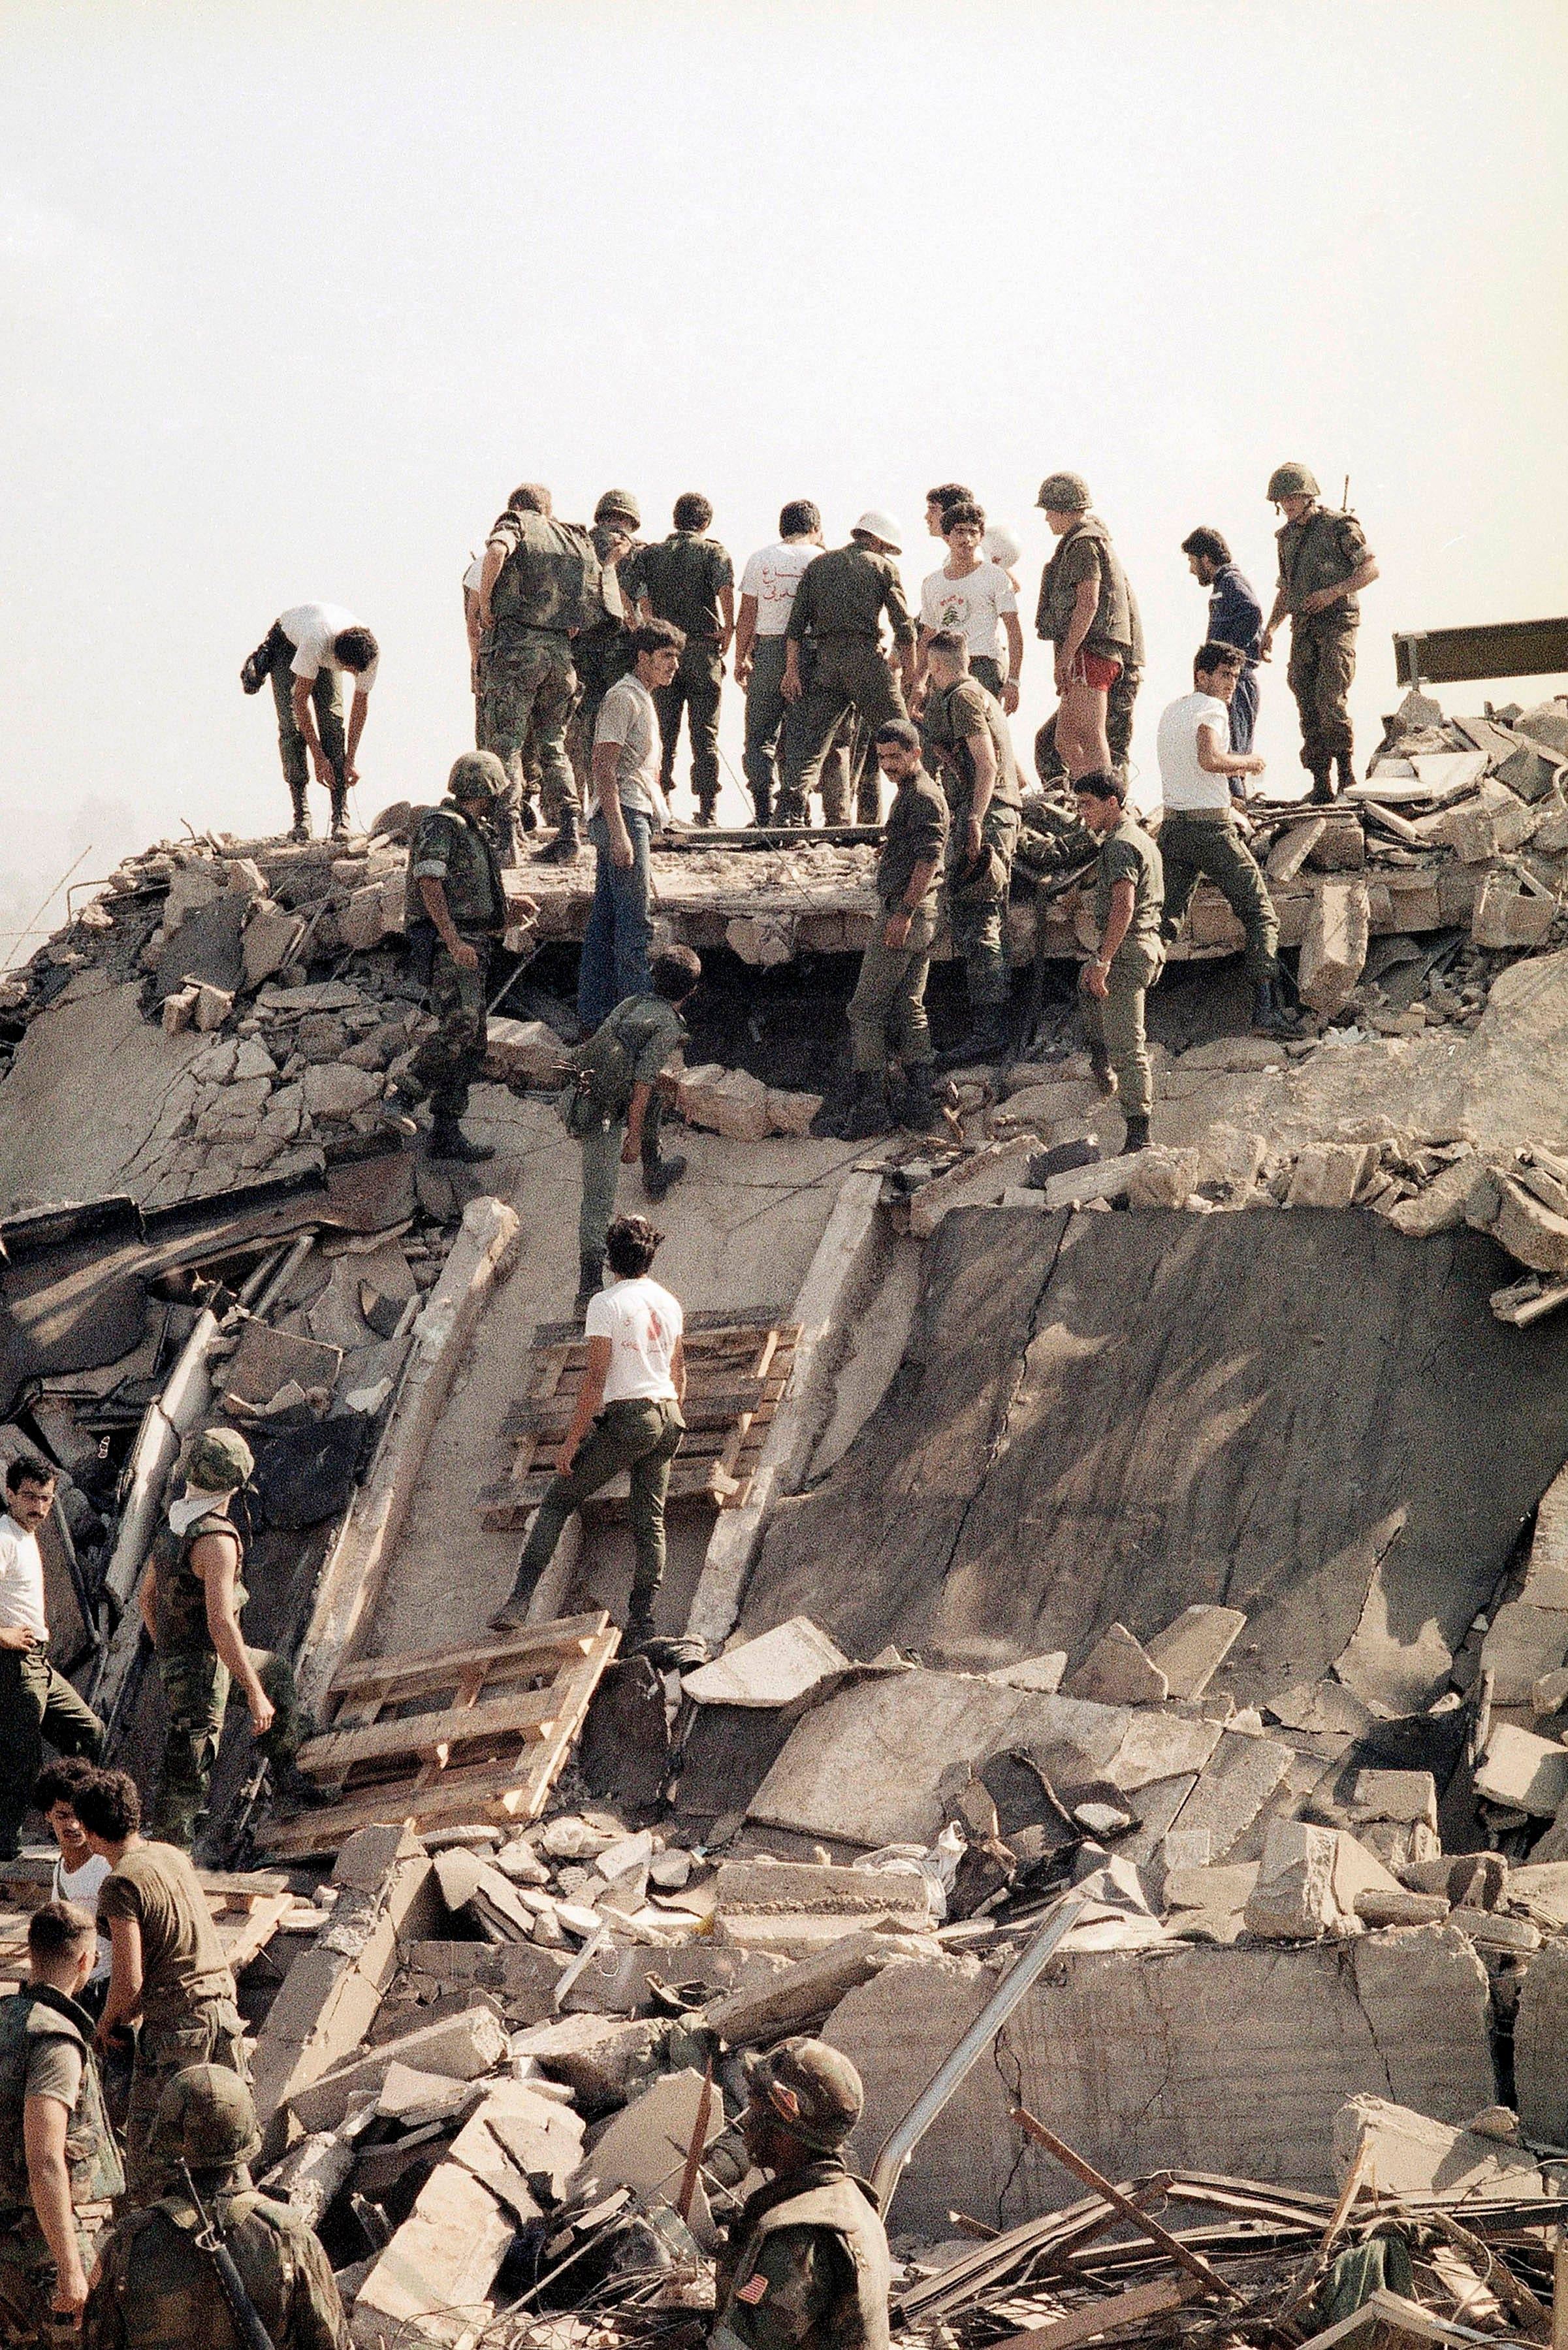 Recalling The Deadly 1983 Attack On The Marine Barracks